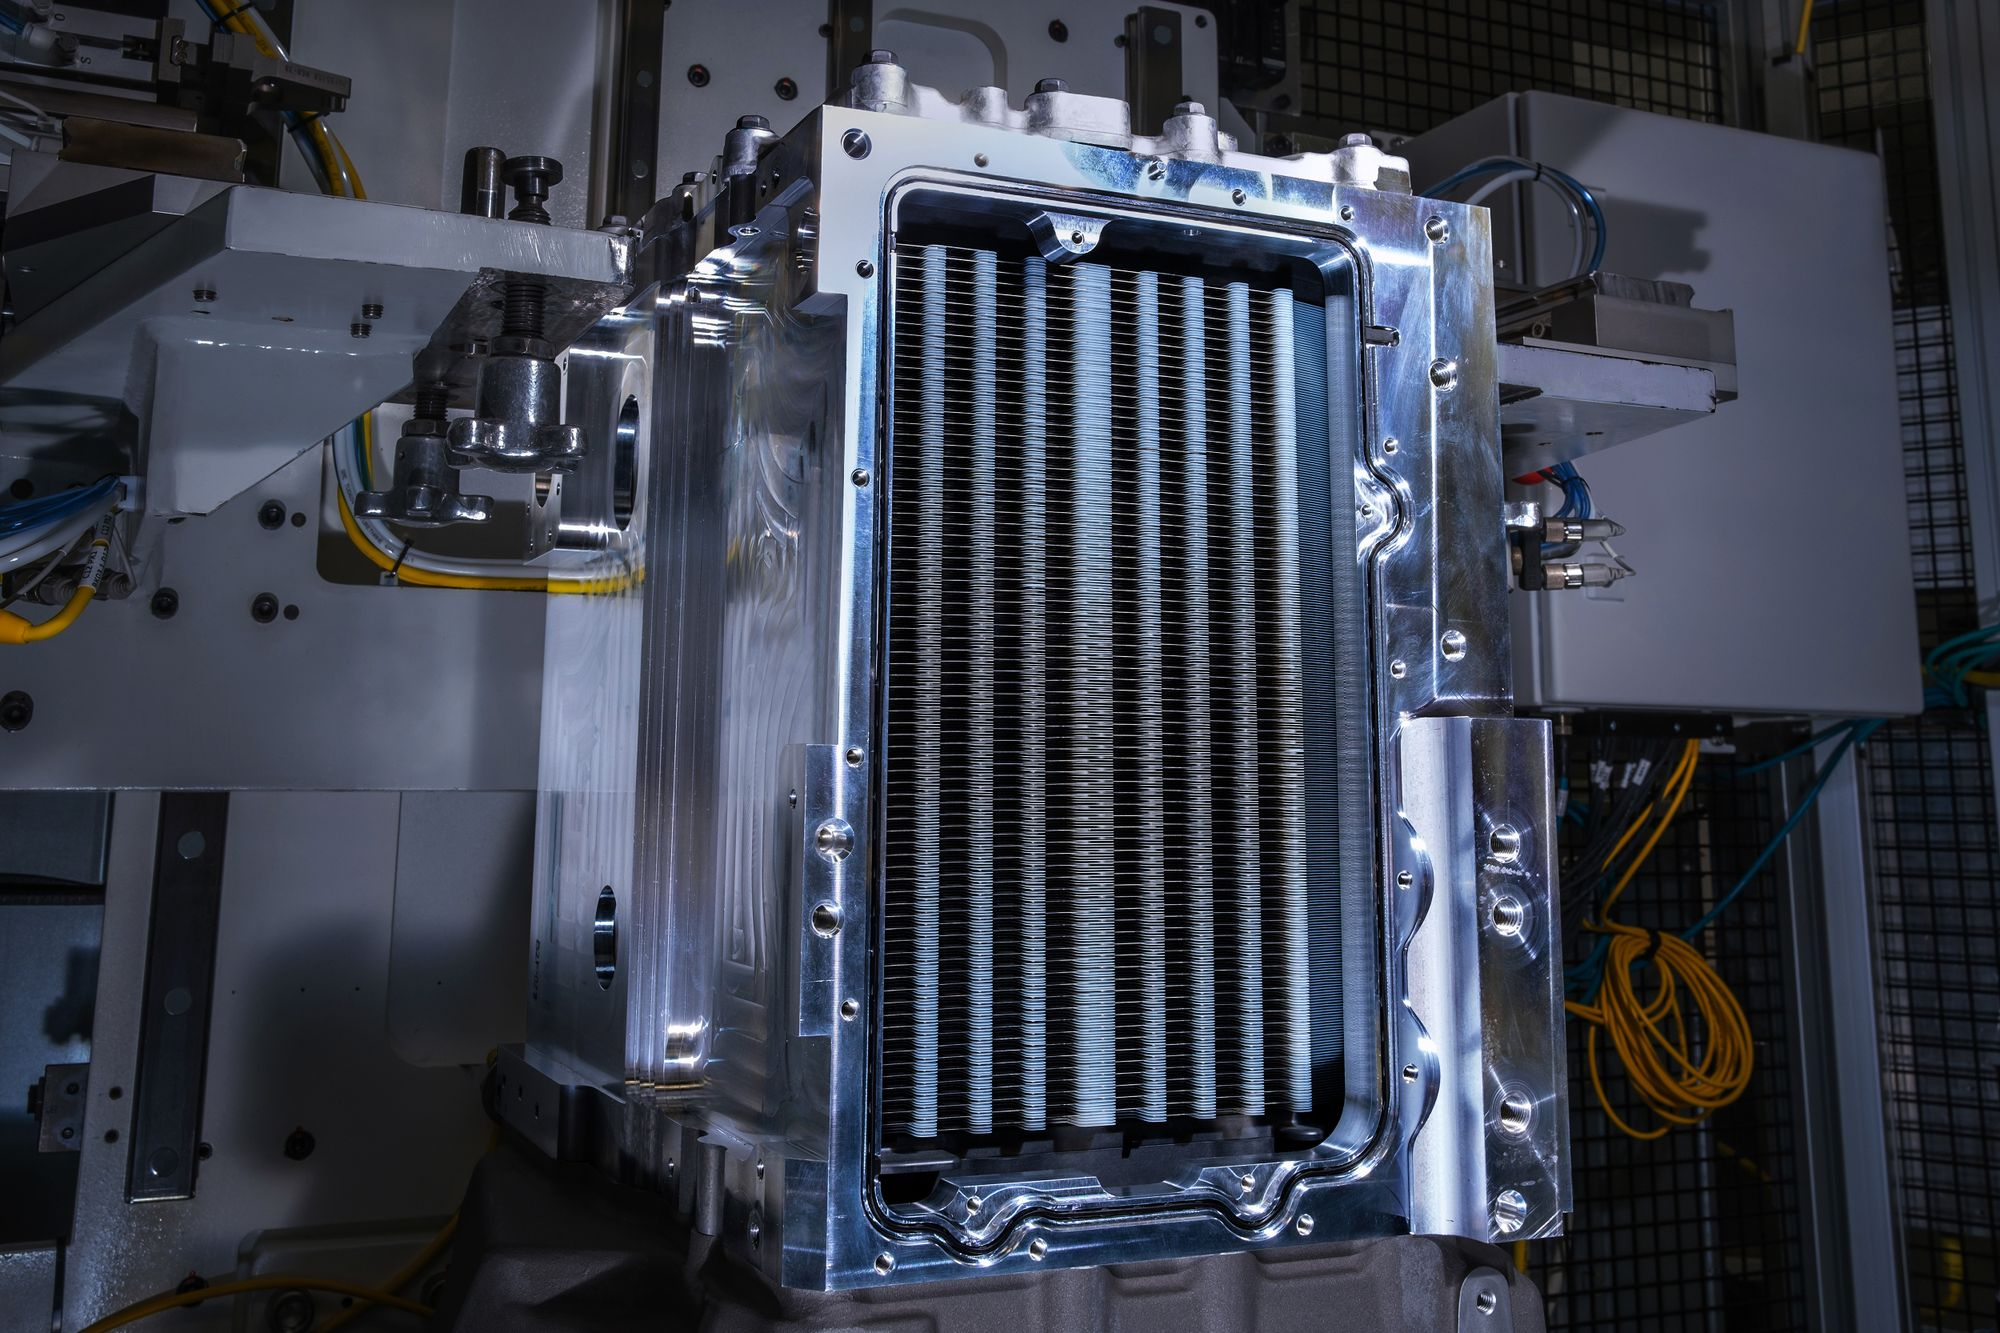 HYDROTEC hydrogen fuel cell-based electrical power generation system for aircraft applications